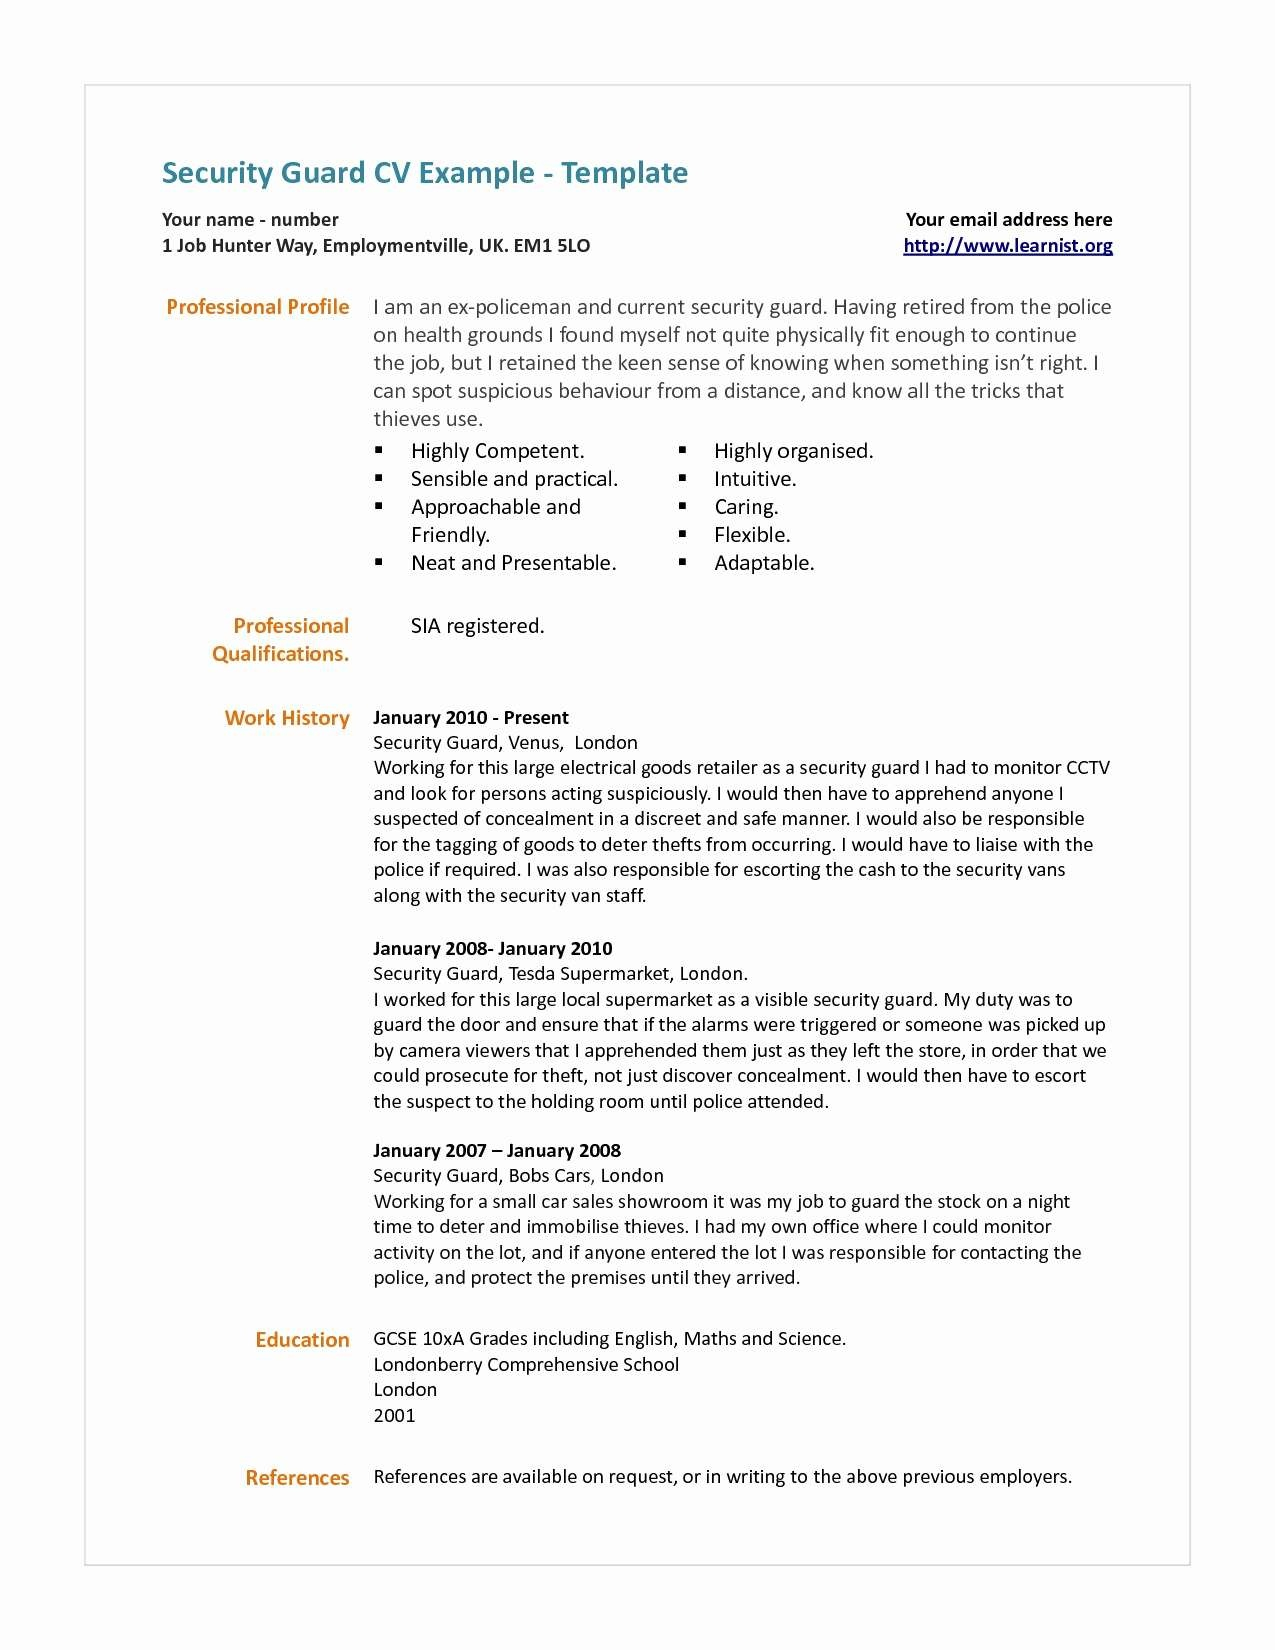 Security Guard Resume - Security Resume Objective Examples Luxury Security Guard Resume